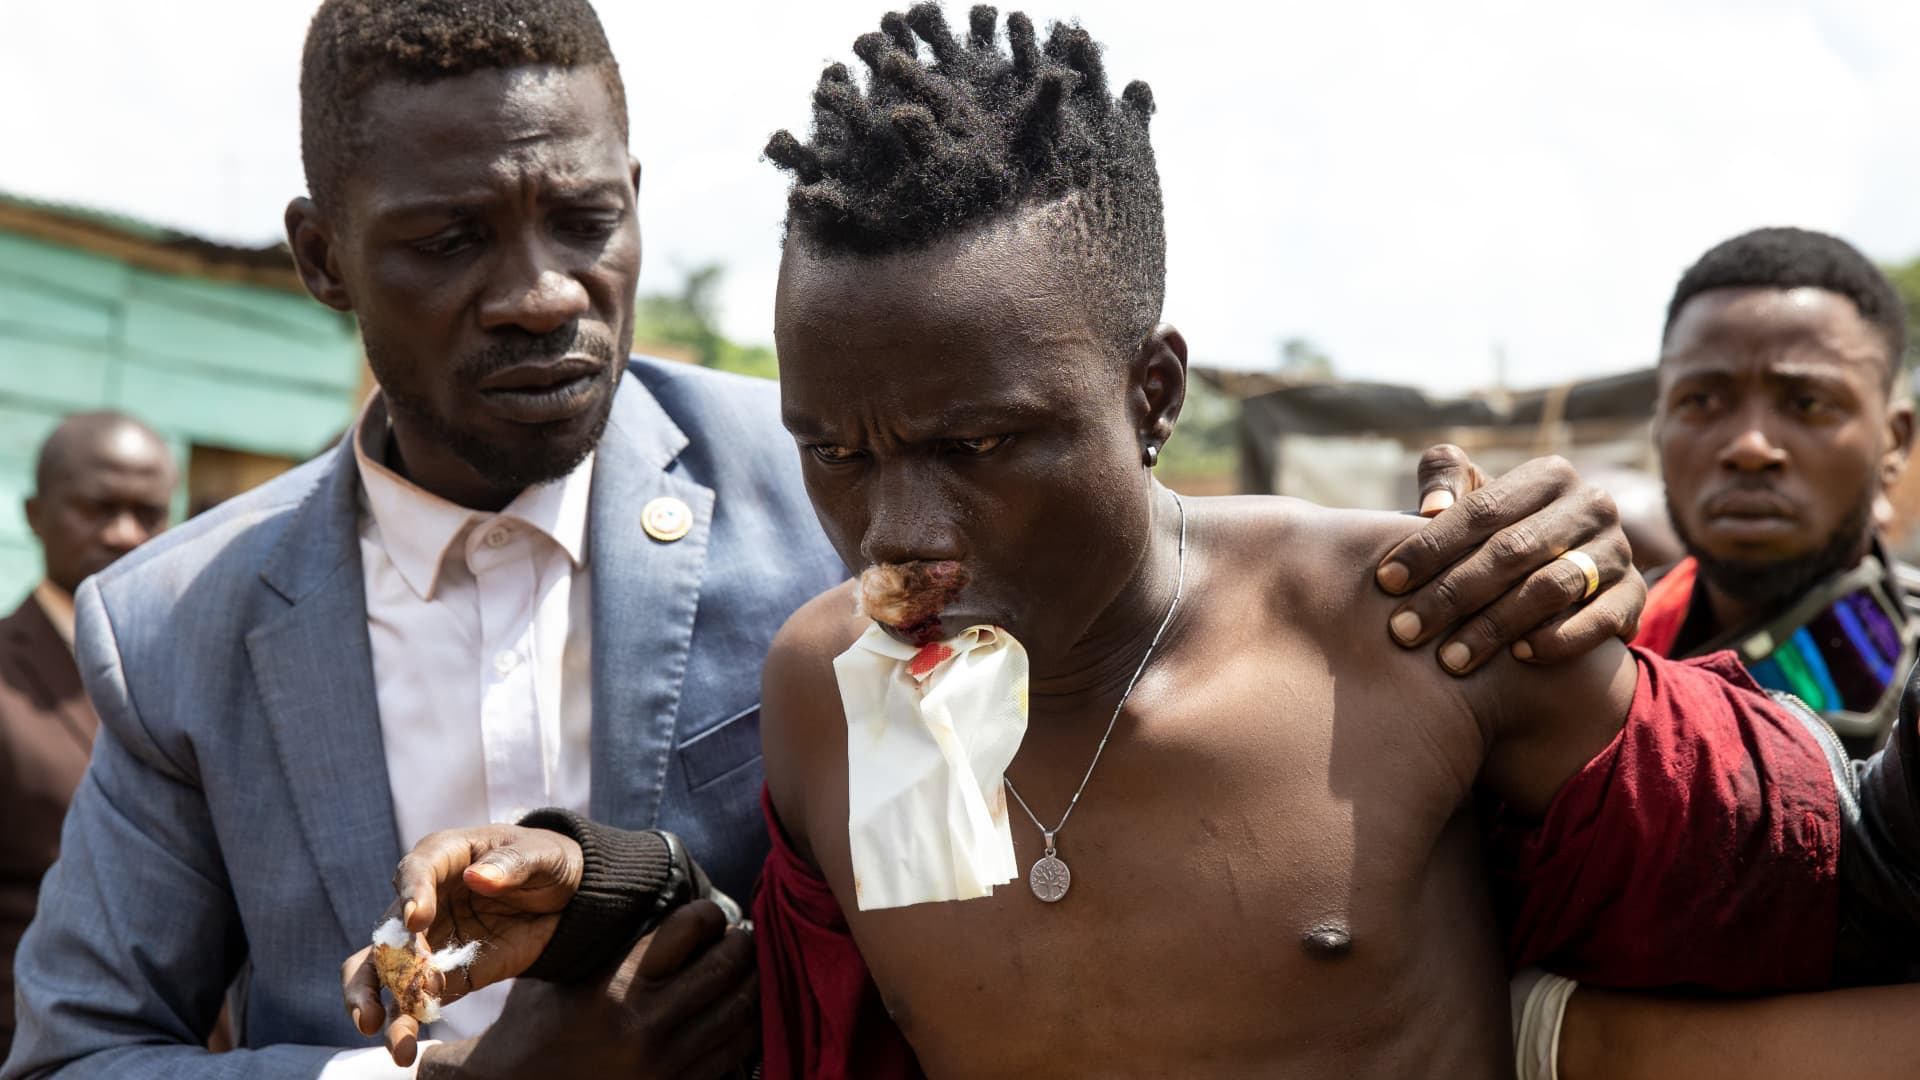 Bobi Wine takes an injured supporter into a medical center on December 01, 2020 in Jinja, Uganda.